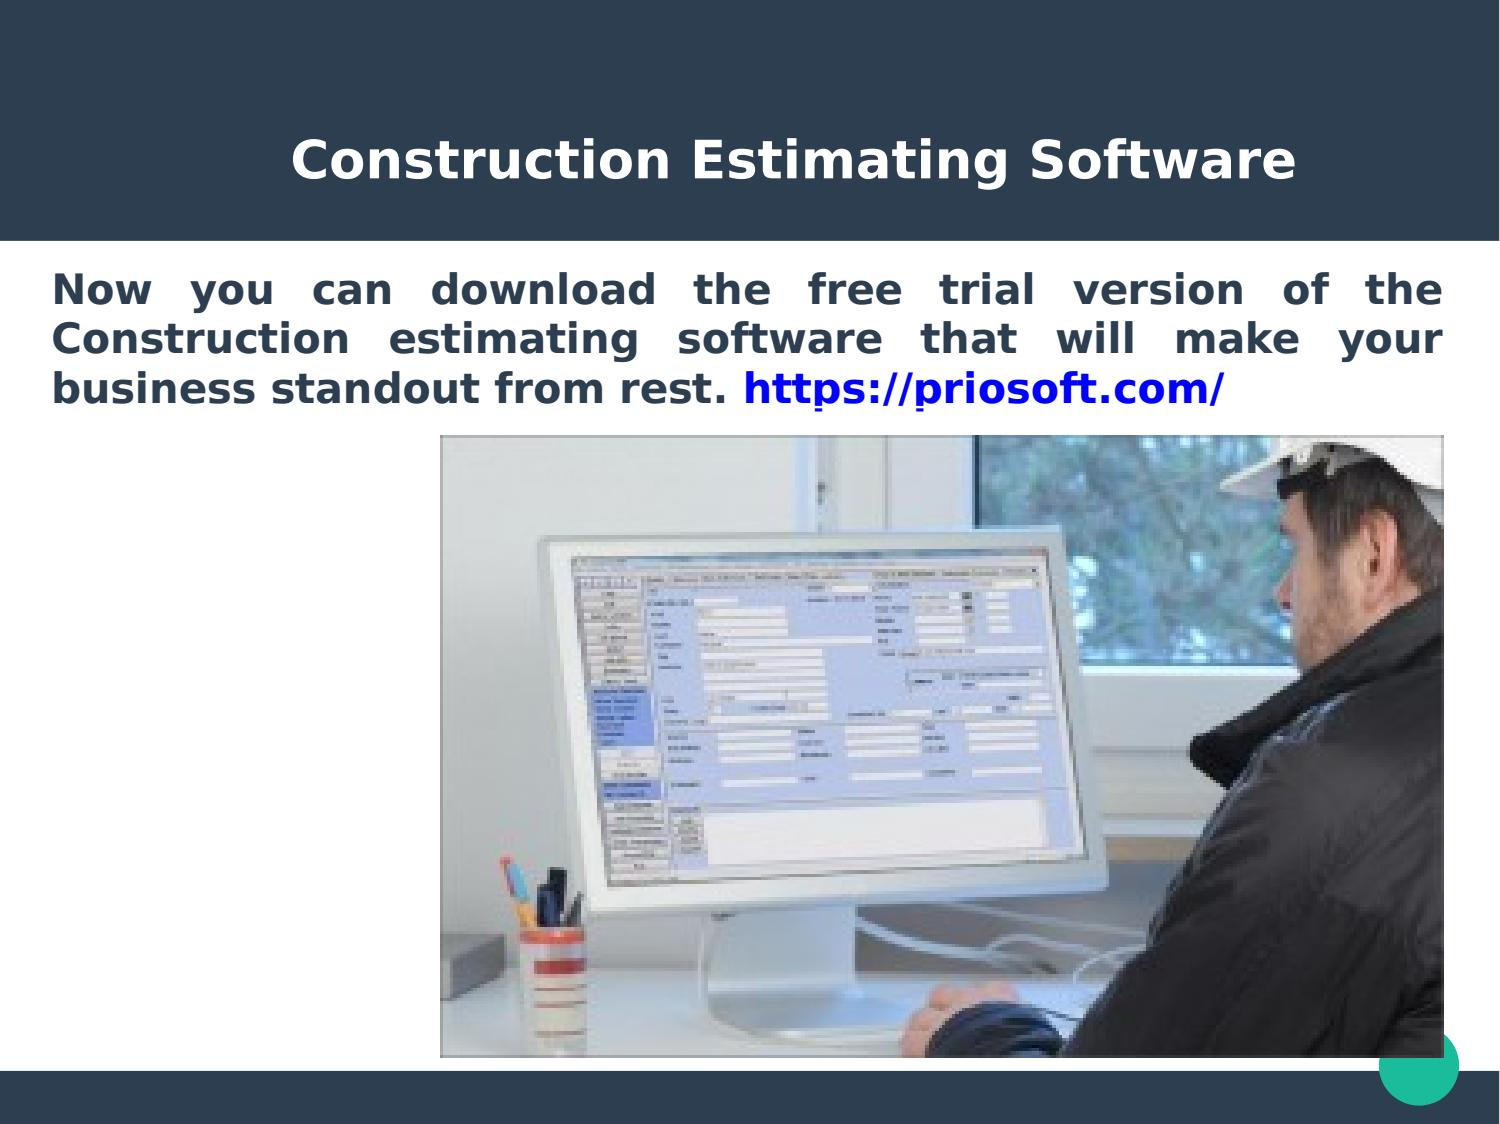 Construction estimating software by priosoft - issuu